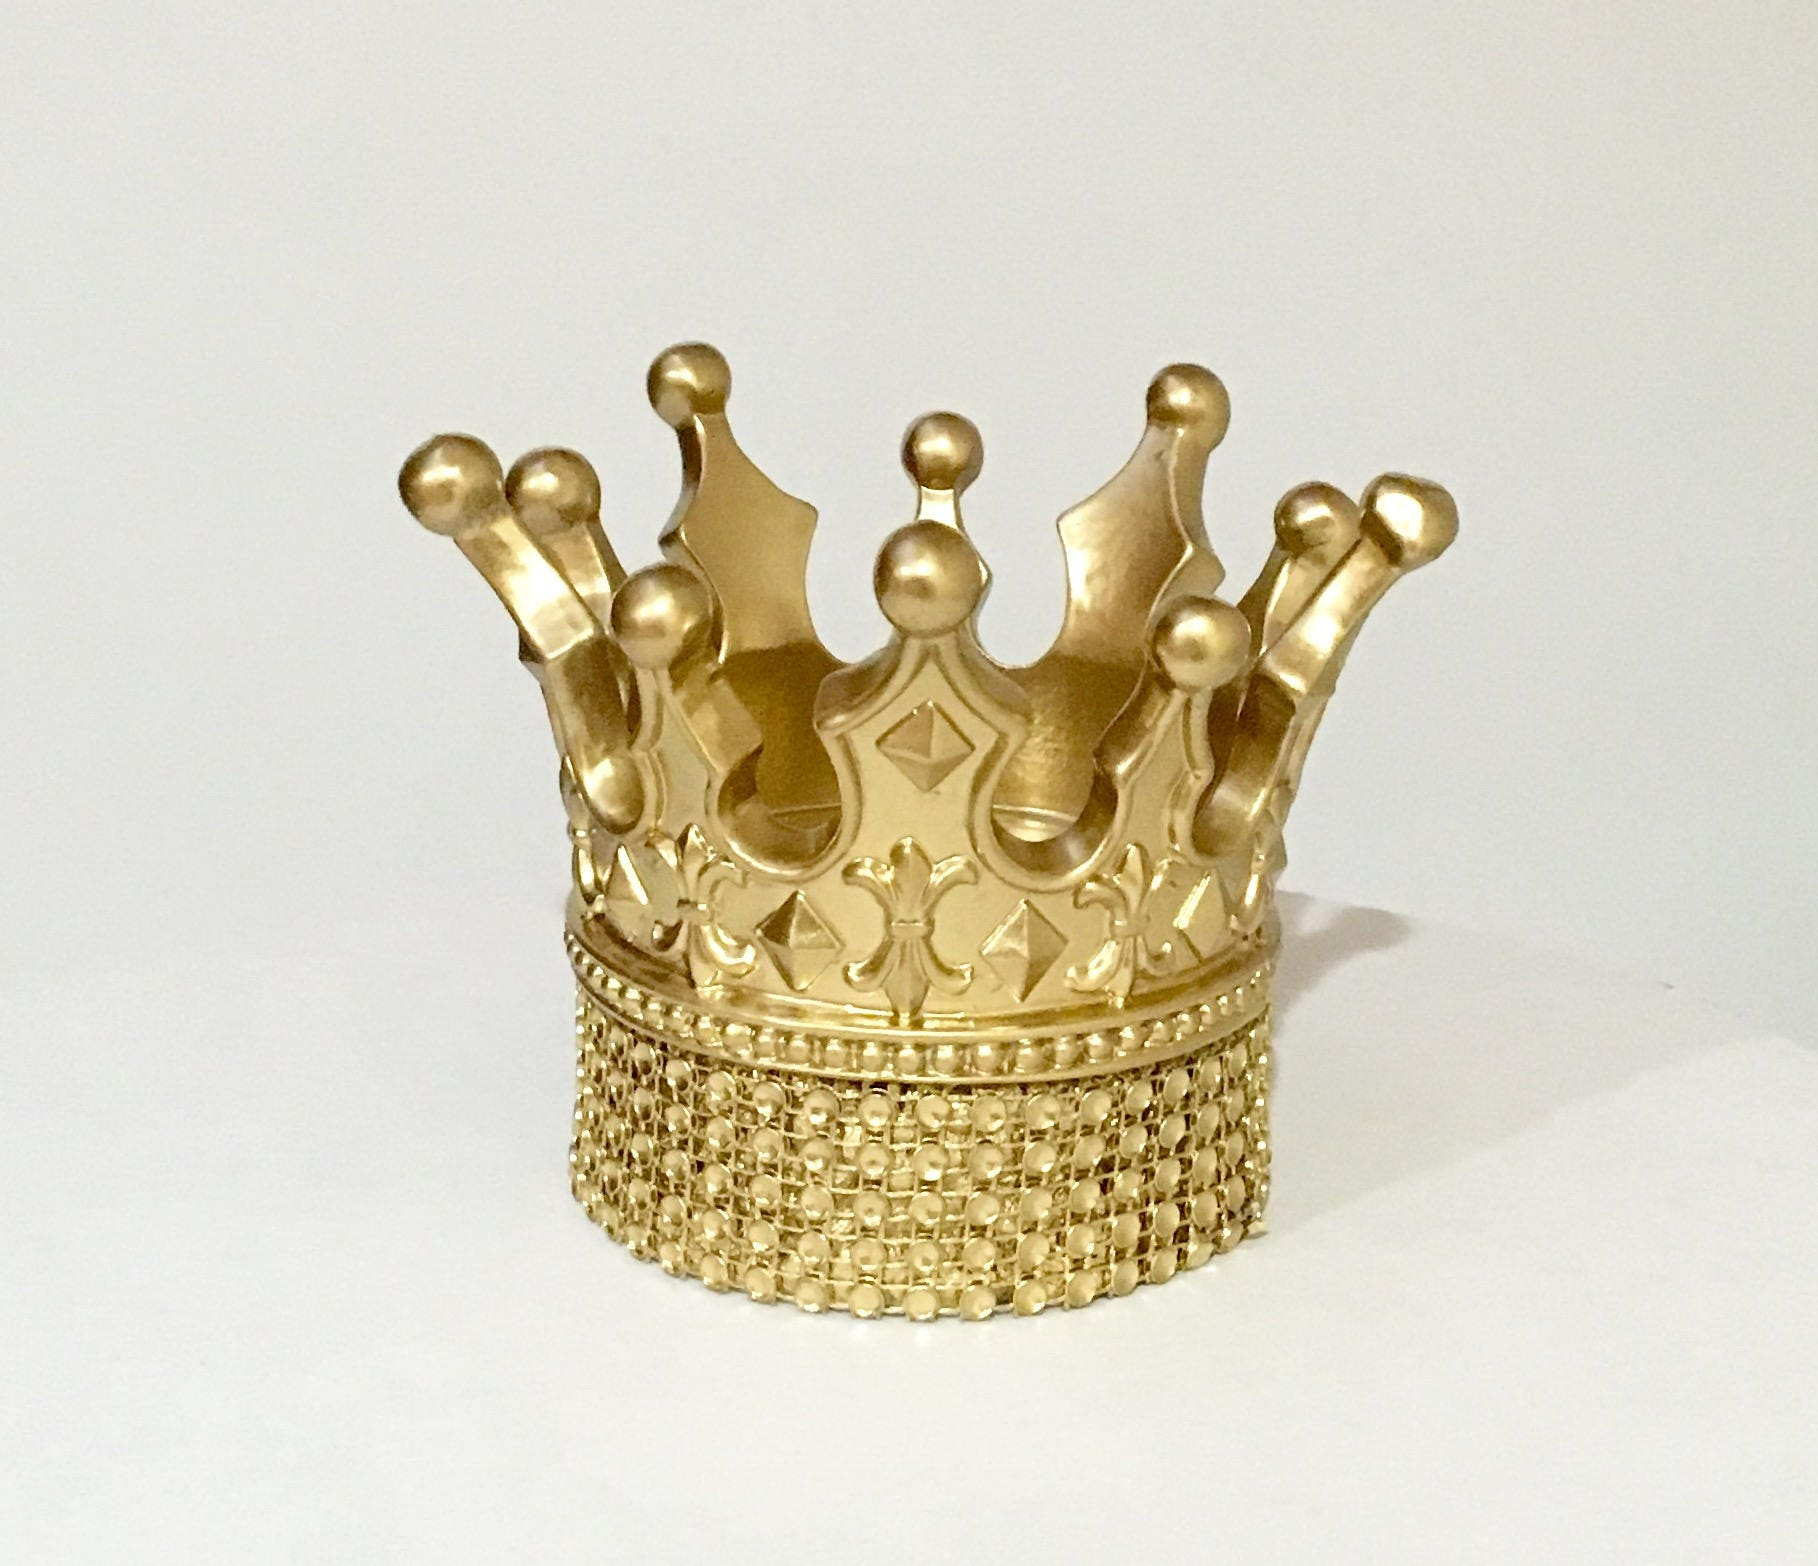 SALE Gold Crown Cake Topper for your Princess Cakes or